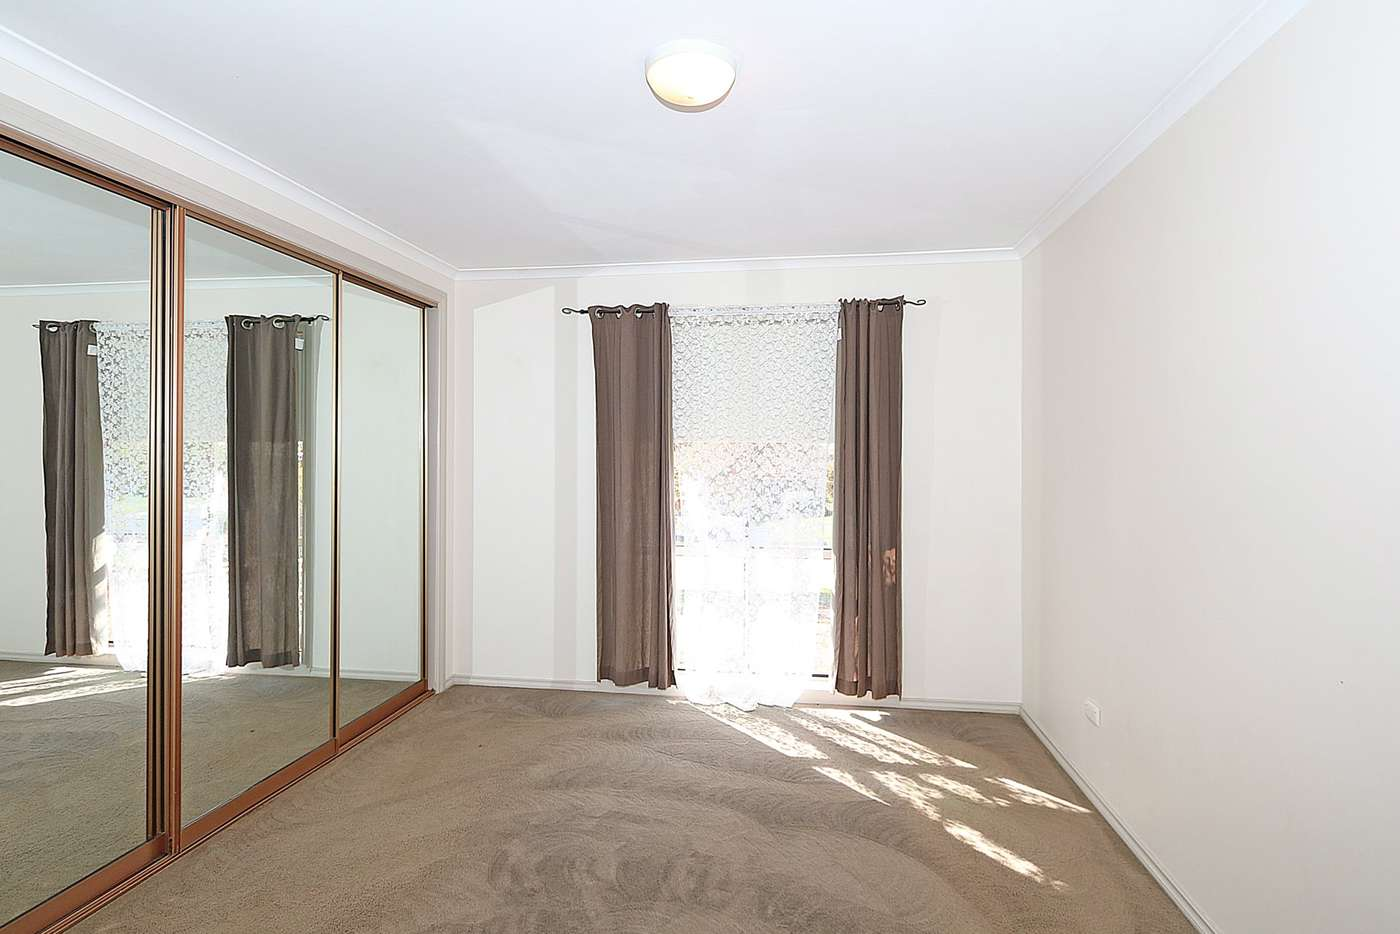 Sixth view of Homely house listing, 16 Clowes Place, Ashmont NSW 2650